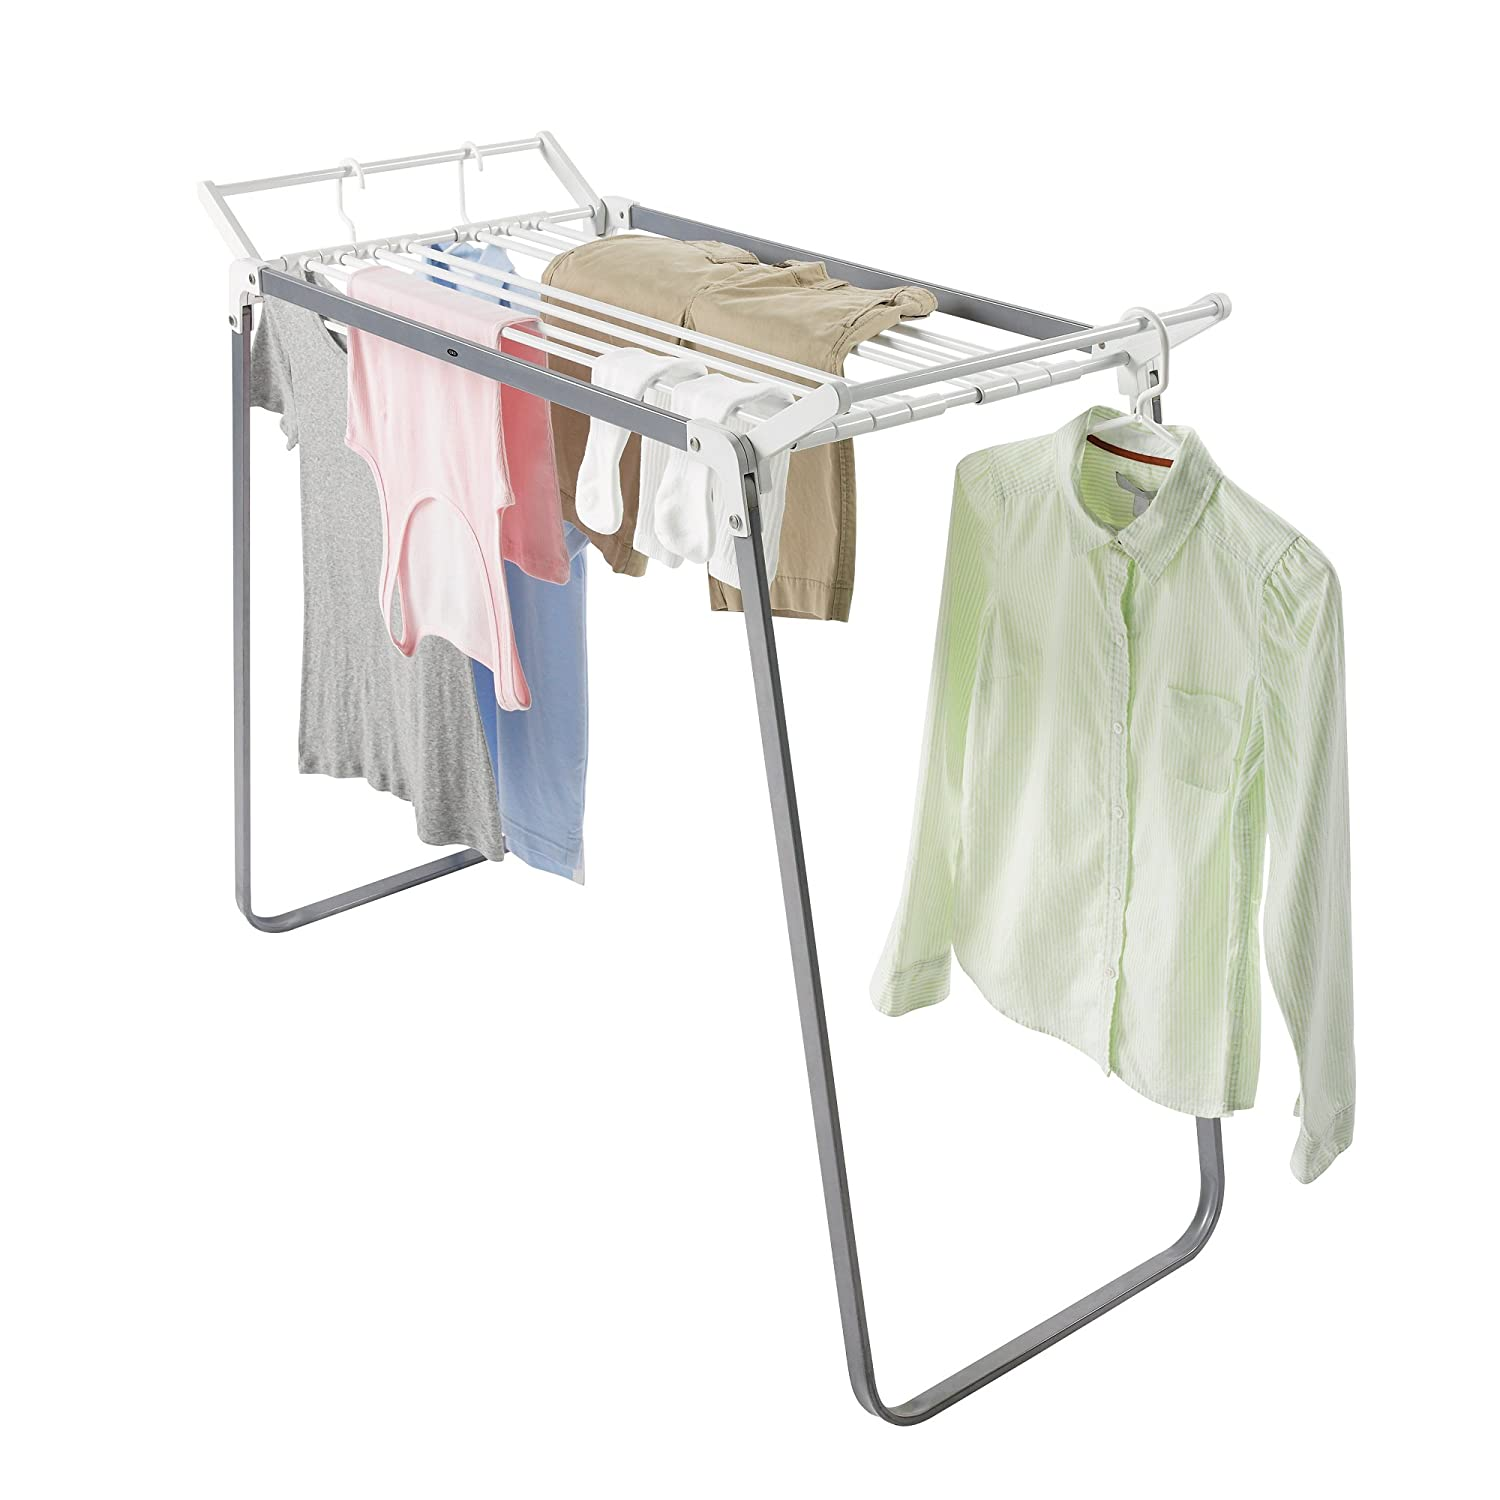 Small Folding Clothes Drying Rack For Camping and RV